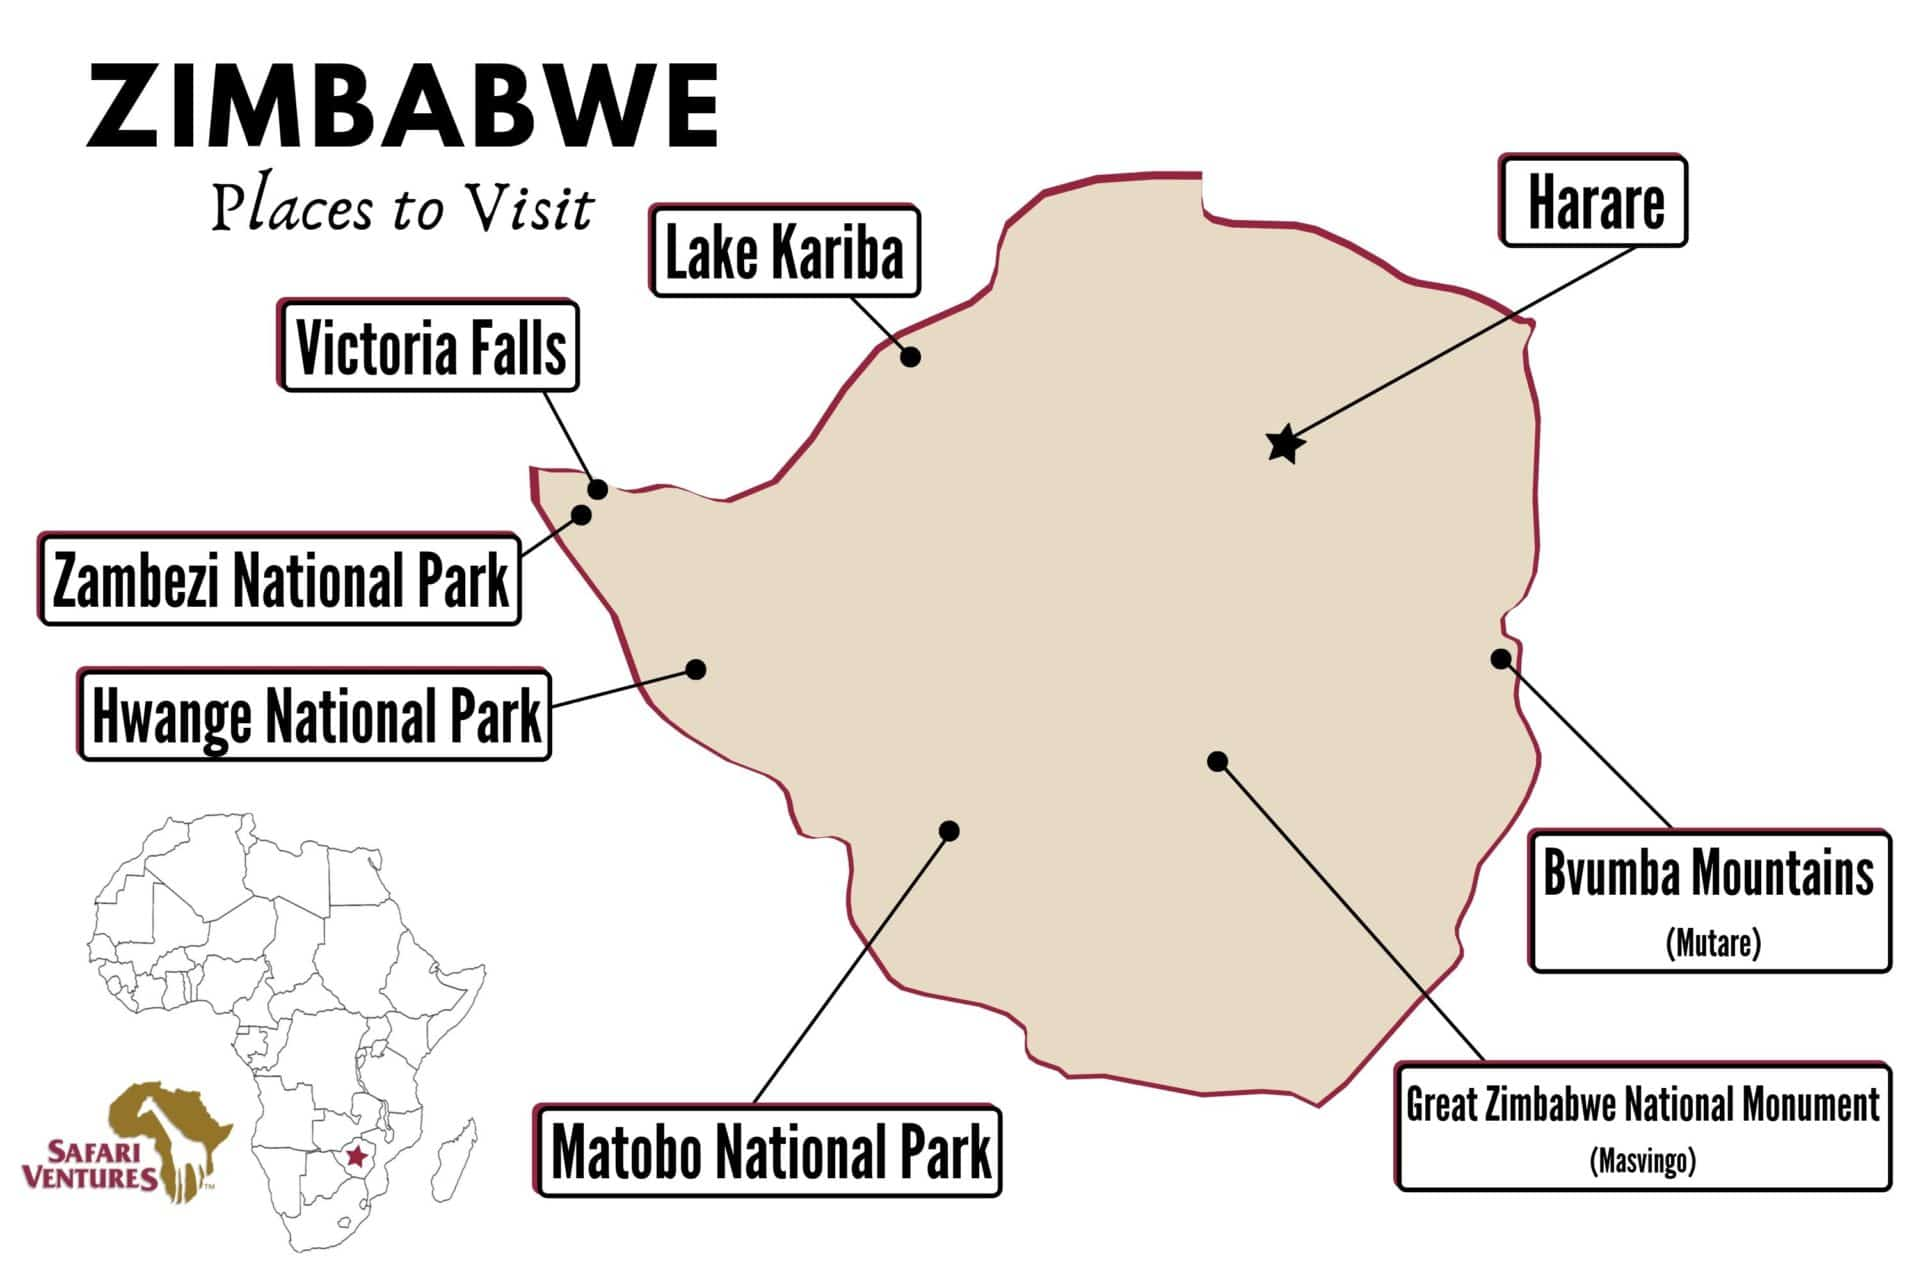 Places to visit in Zimbabwe